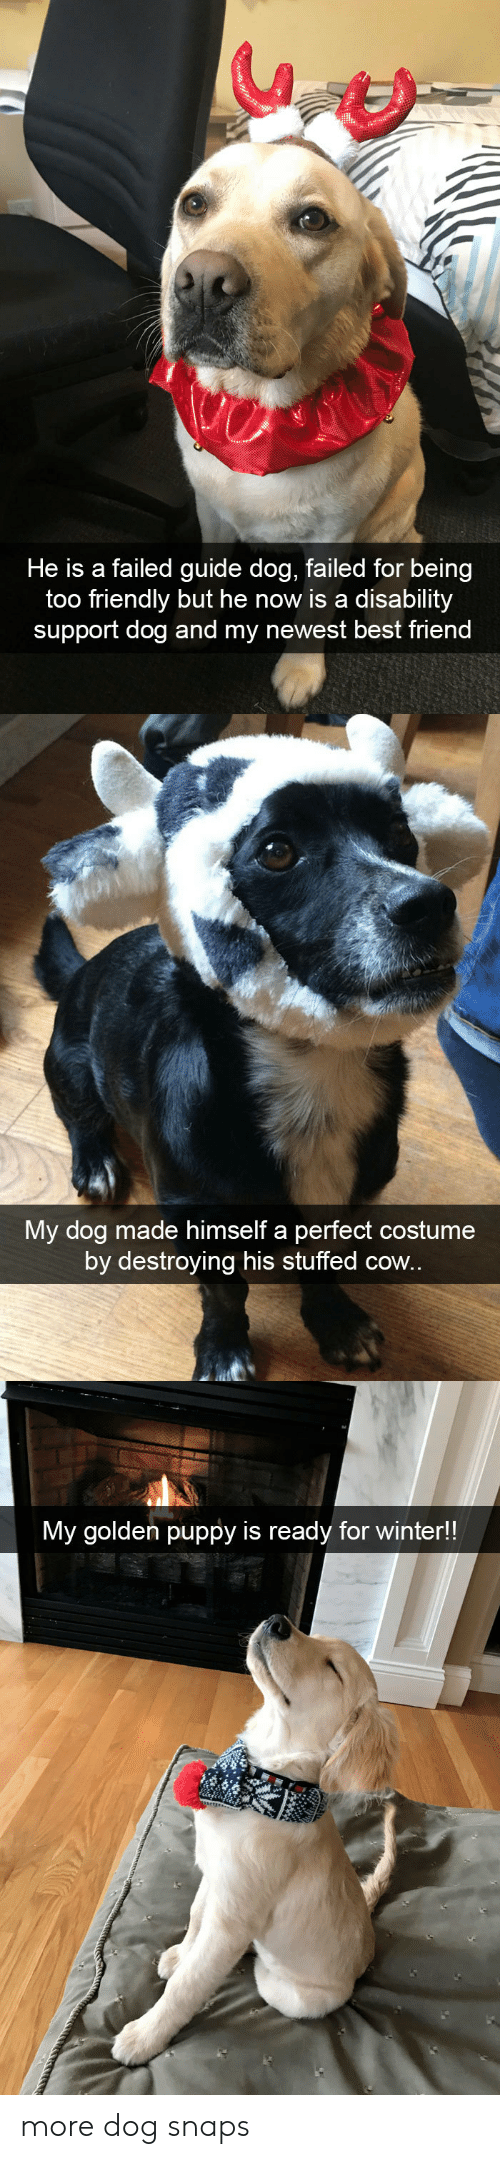 disability: He is a failed guide dog, failed for being  too friendly but he now is a disability  support dog and my newest best friend   My dog made himself a perfect costume  by destroying his stuffed cow.   My golden puppy is ready for winter!! more dog snaps